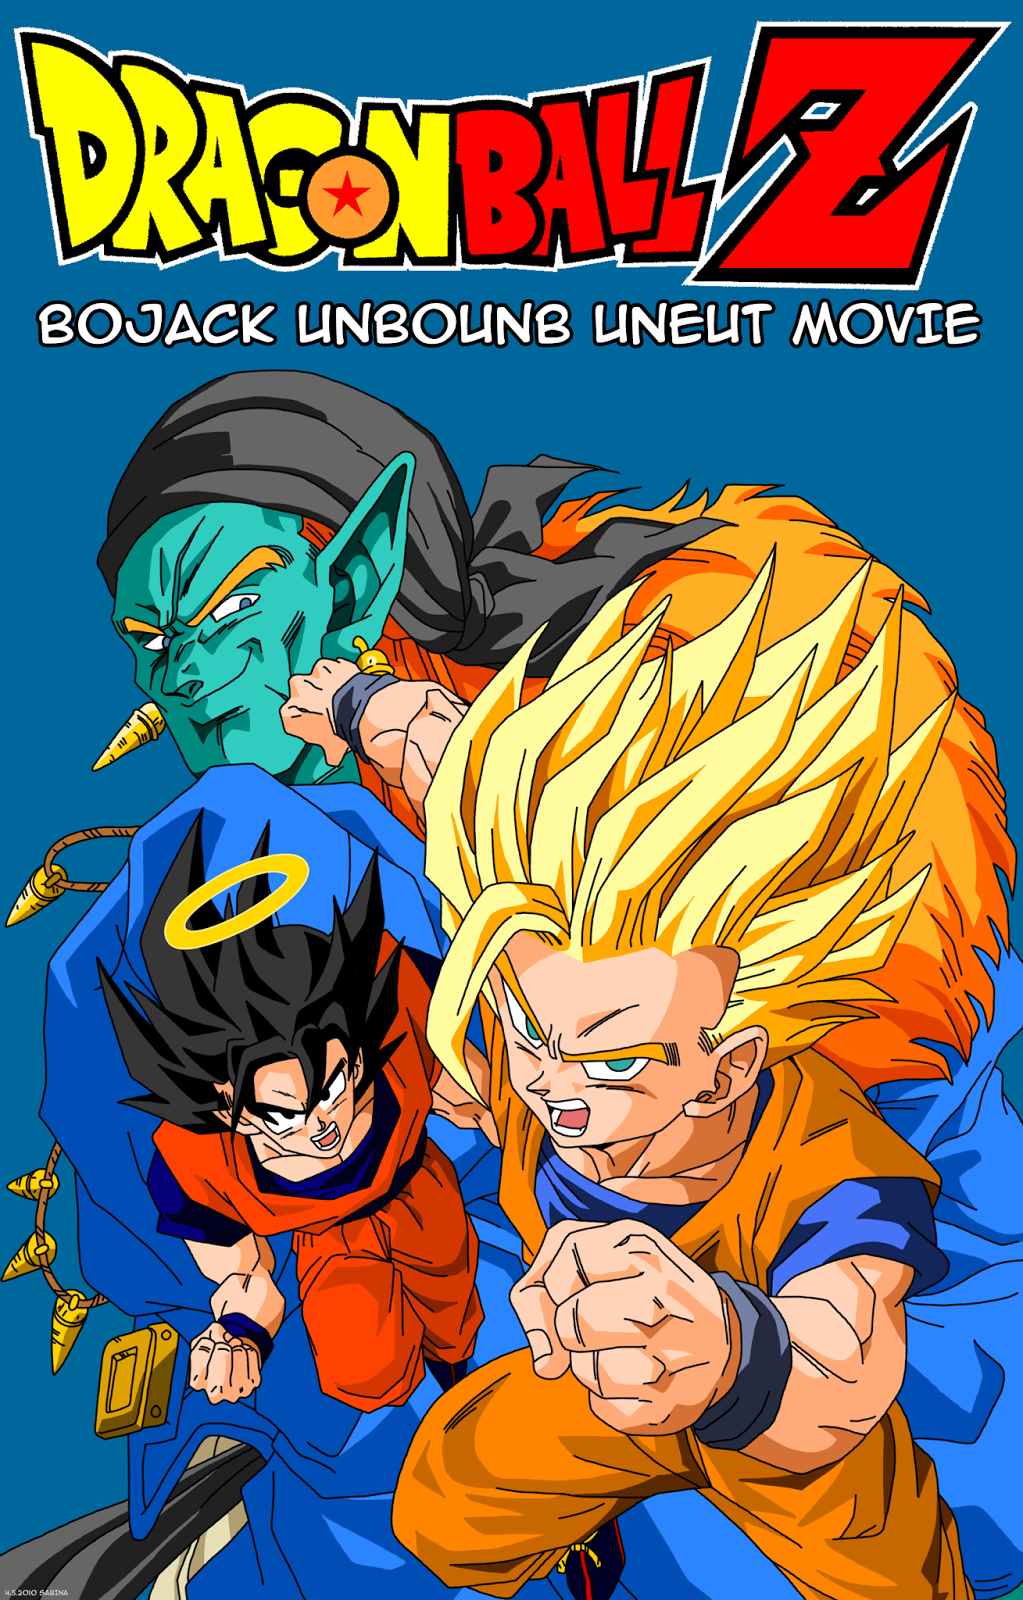 dbz bojack rebound movie cover picture image